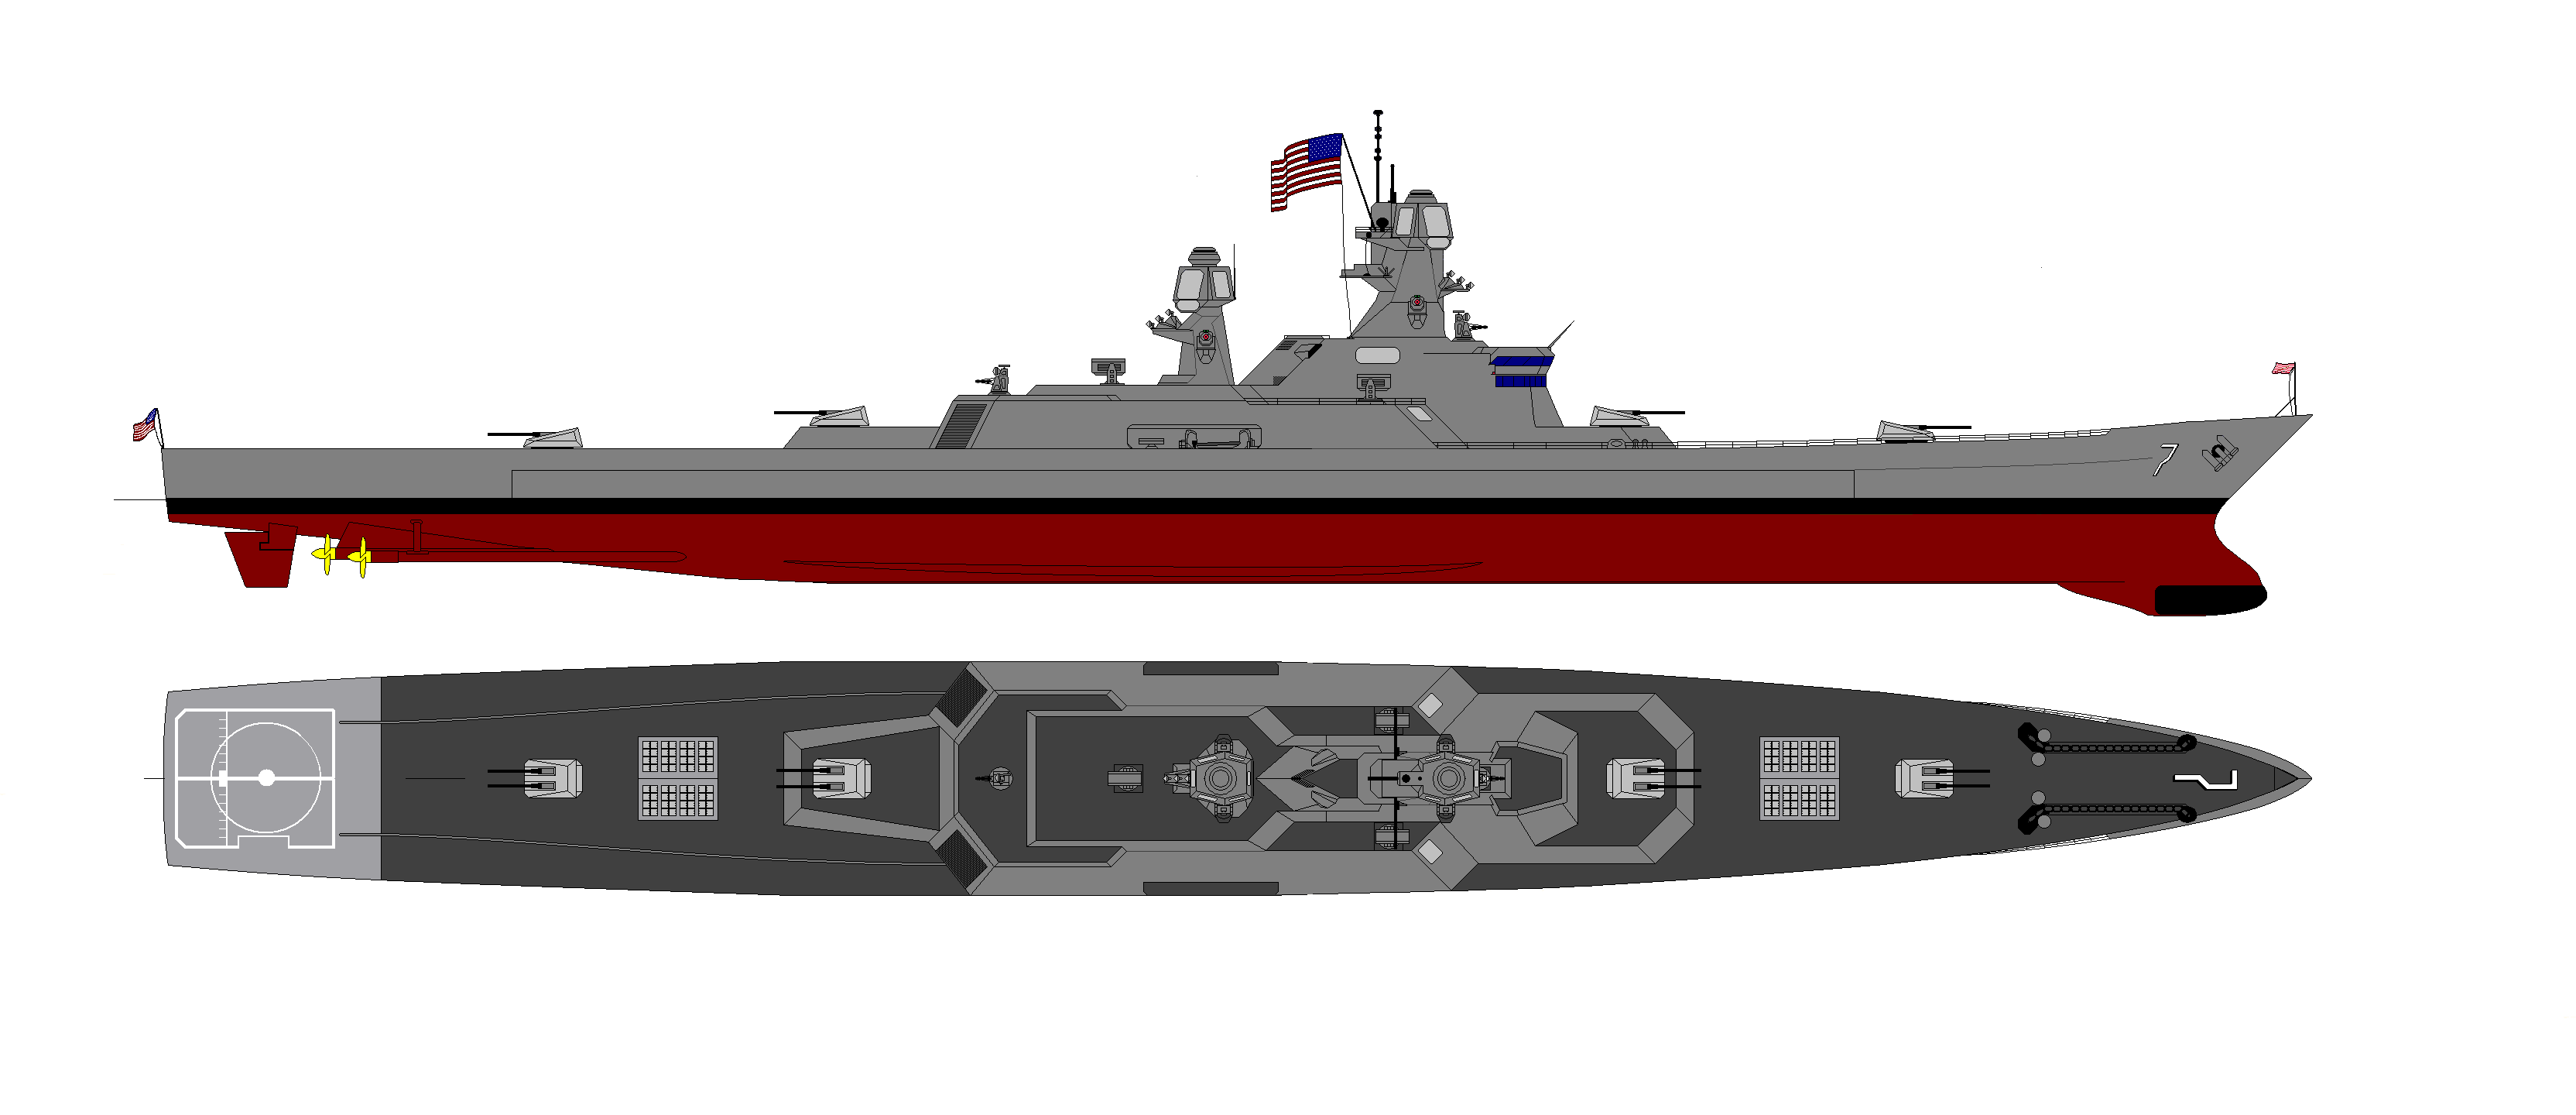 Battlecruiser Thread Is the battlecruiser conceptModern Battleship Design